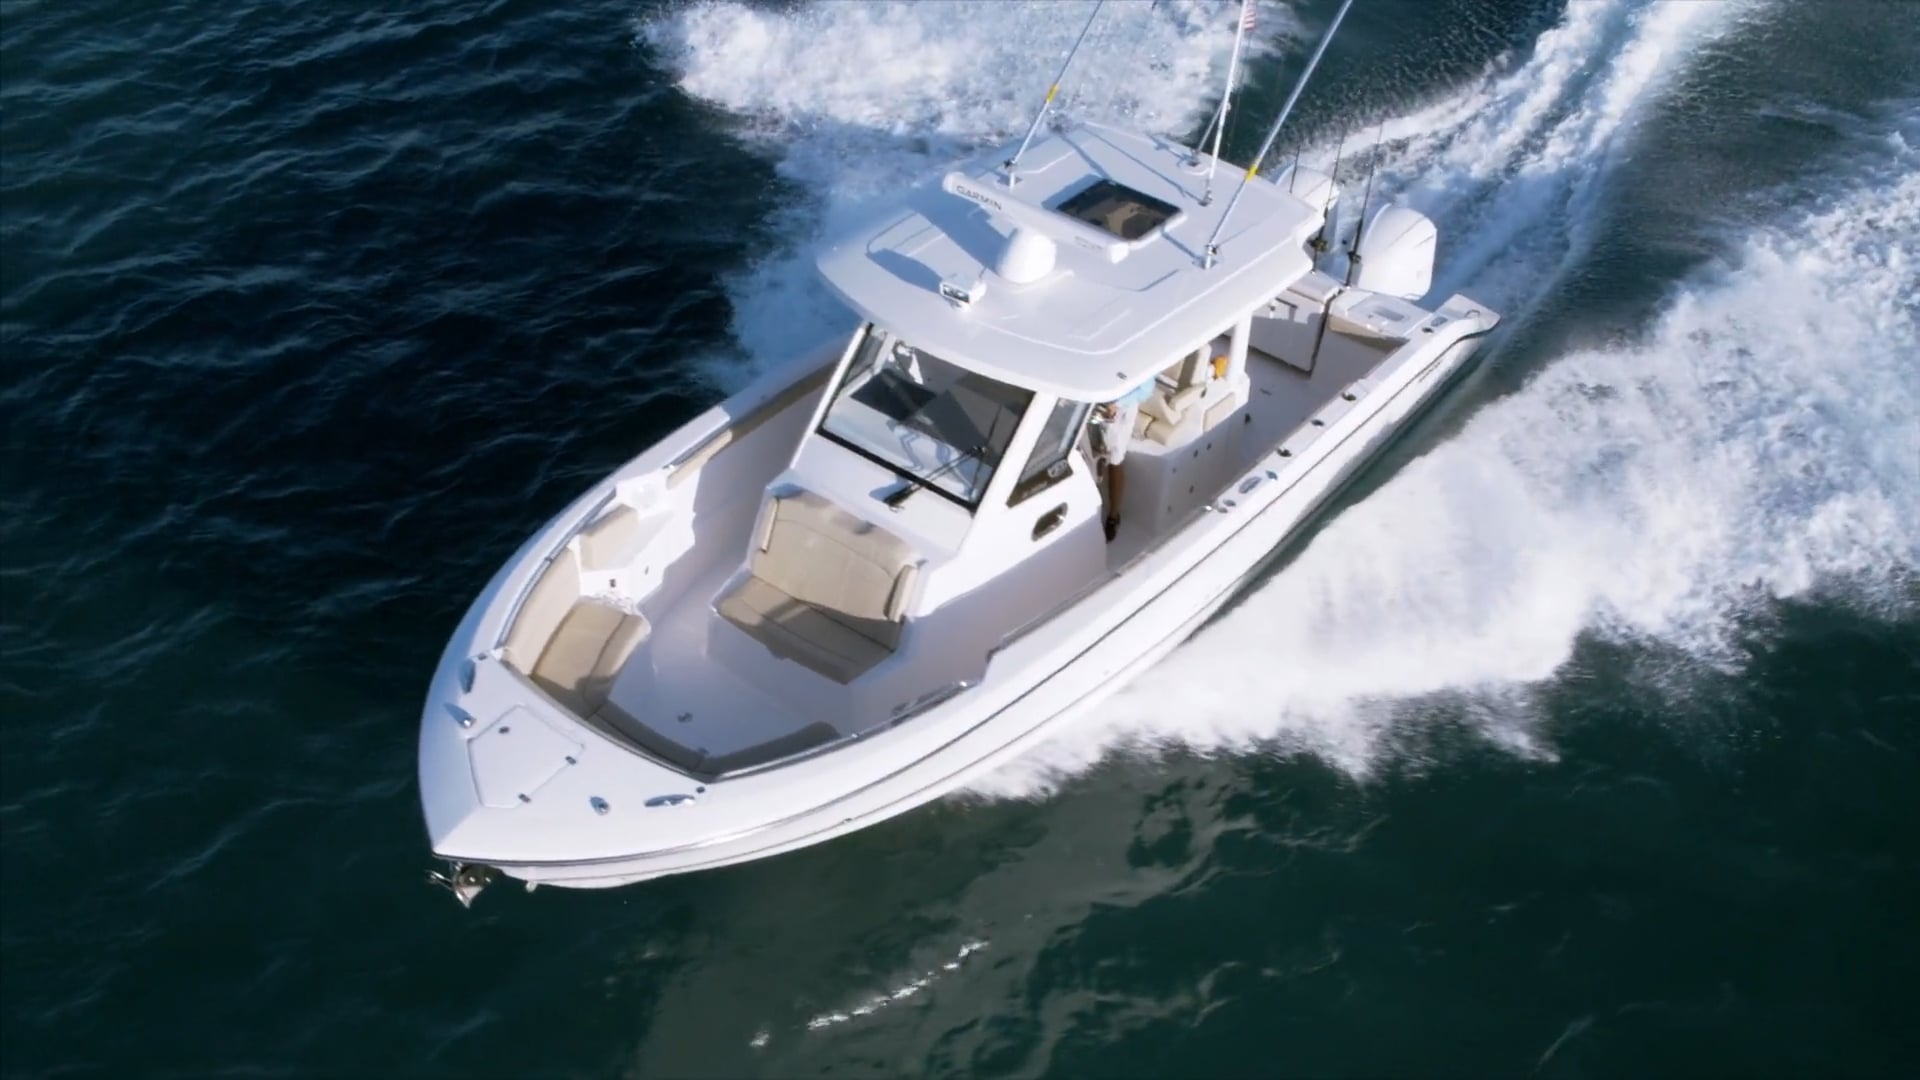 Aerial one quarter front view of S 328 Sport boat running to left.